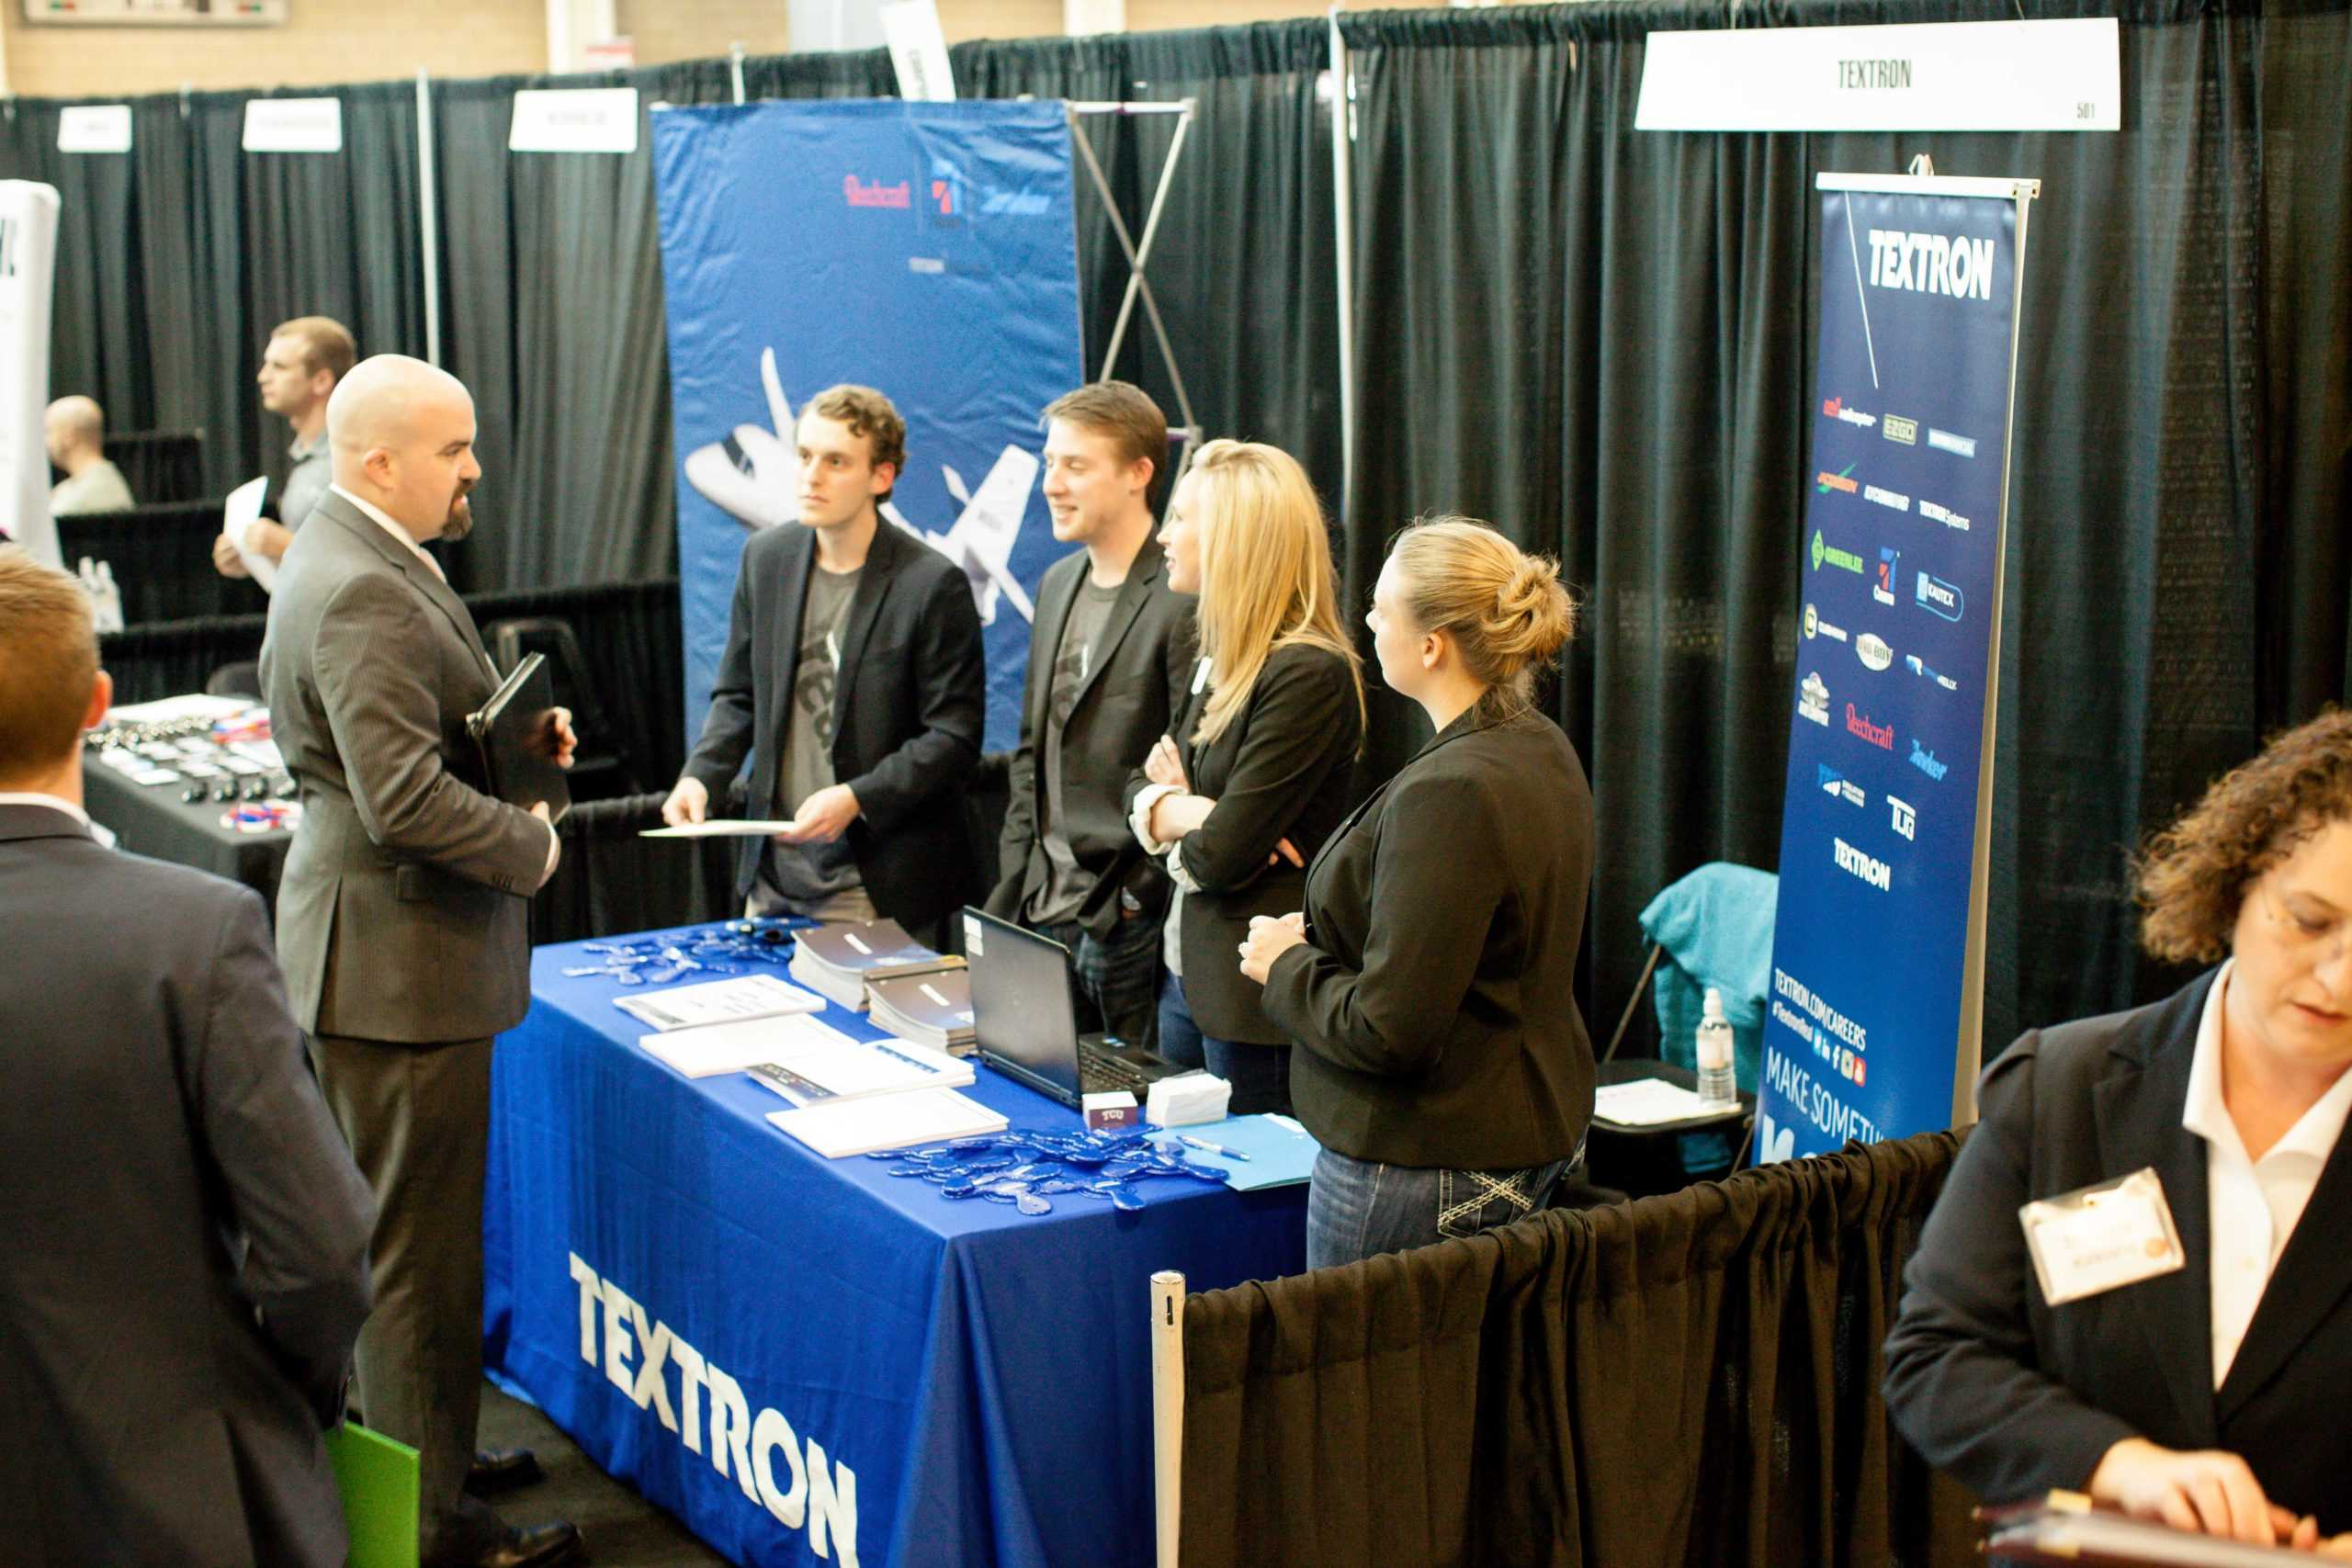 Students interact with business representatives at last year's career expo. Photo courtesy of the Center for Career and Professional Development